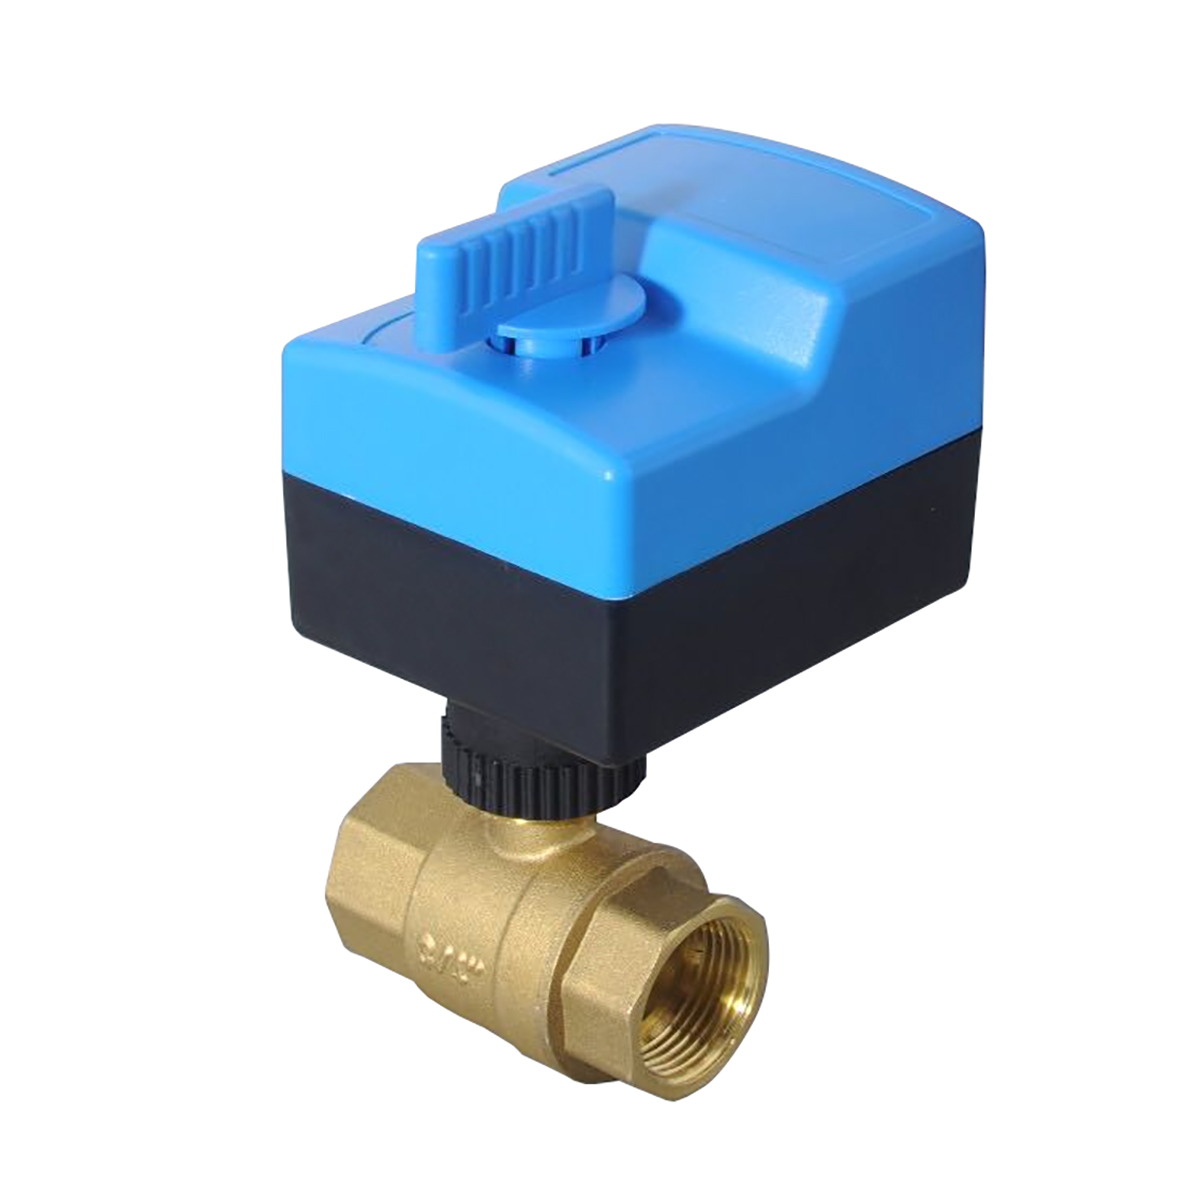 AC220V AC24V 2 way brass valve motorized ball valve electric ball valve  electric Actuator with Automatic and manual DN15 - DN25